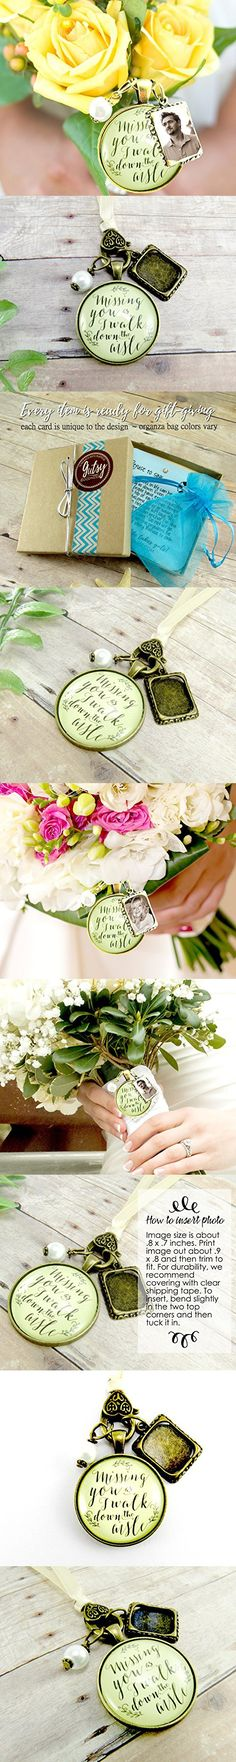 Missing You As I Walk Down the Aisle Wedding Bouquet Memory Charm, Bridal Pendant Memorial Remembrance Photo Jewelry